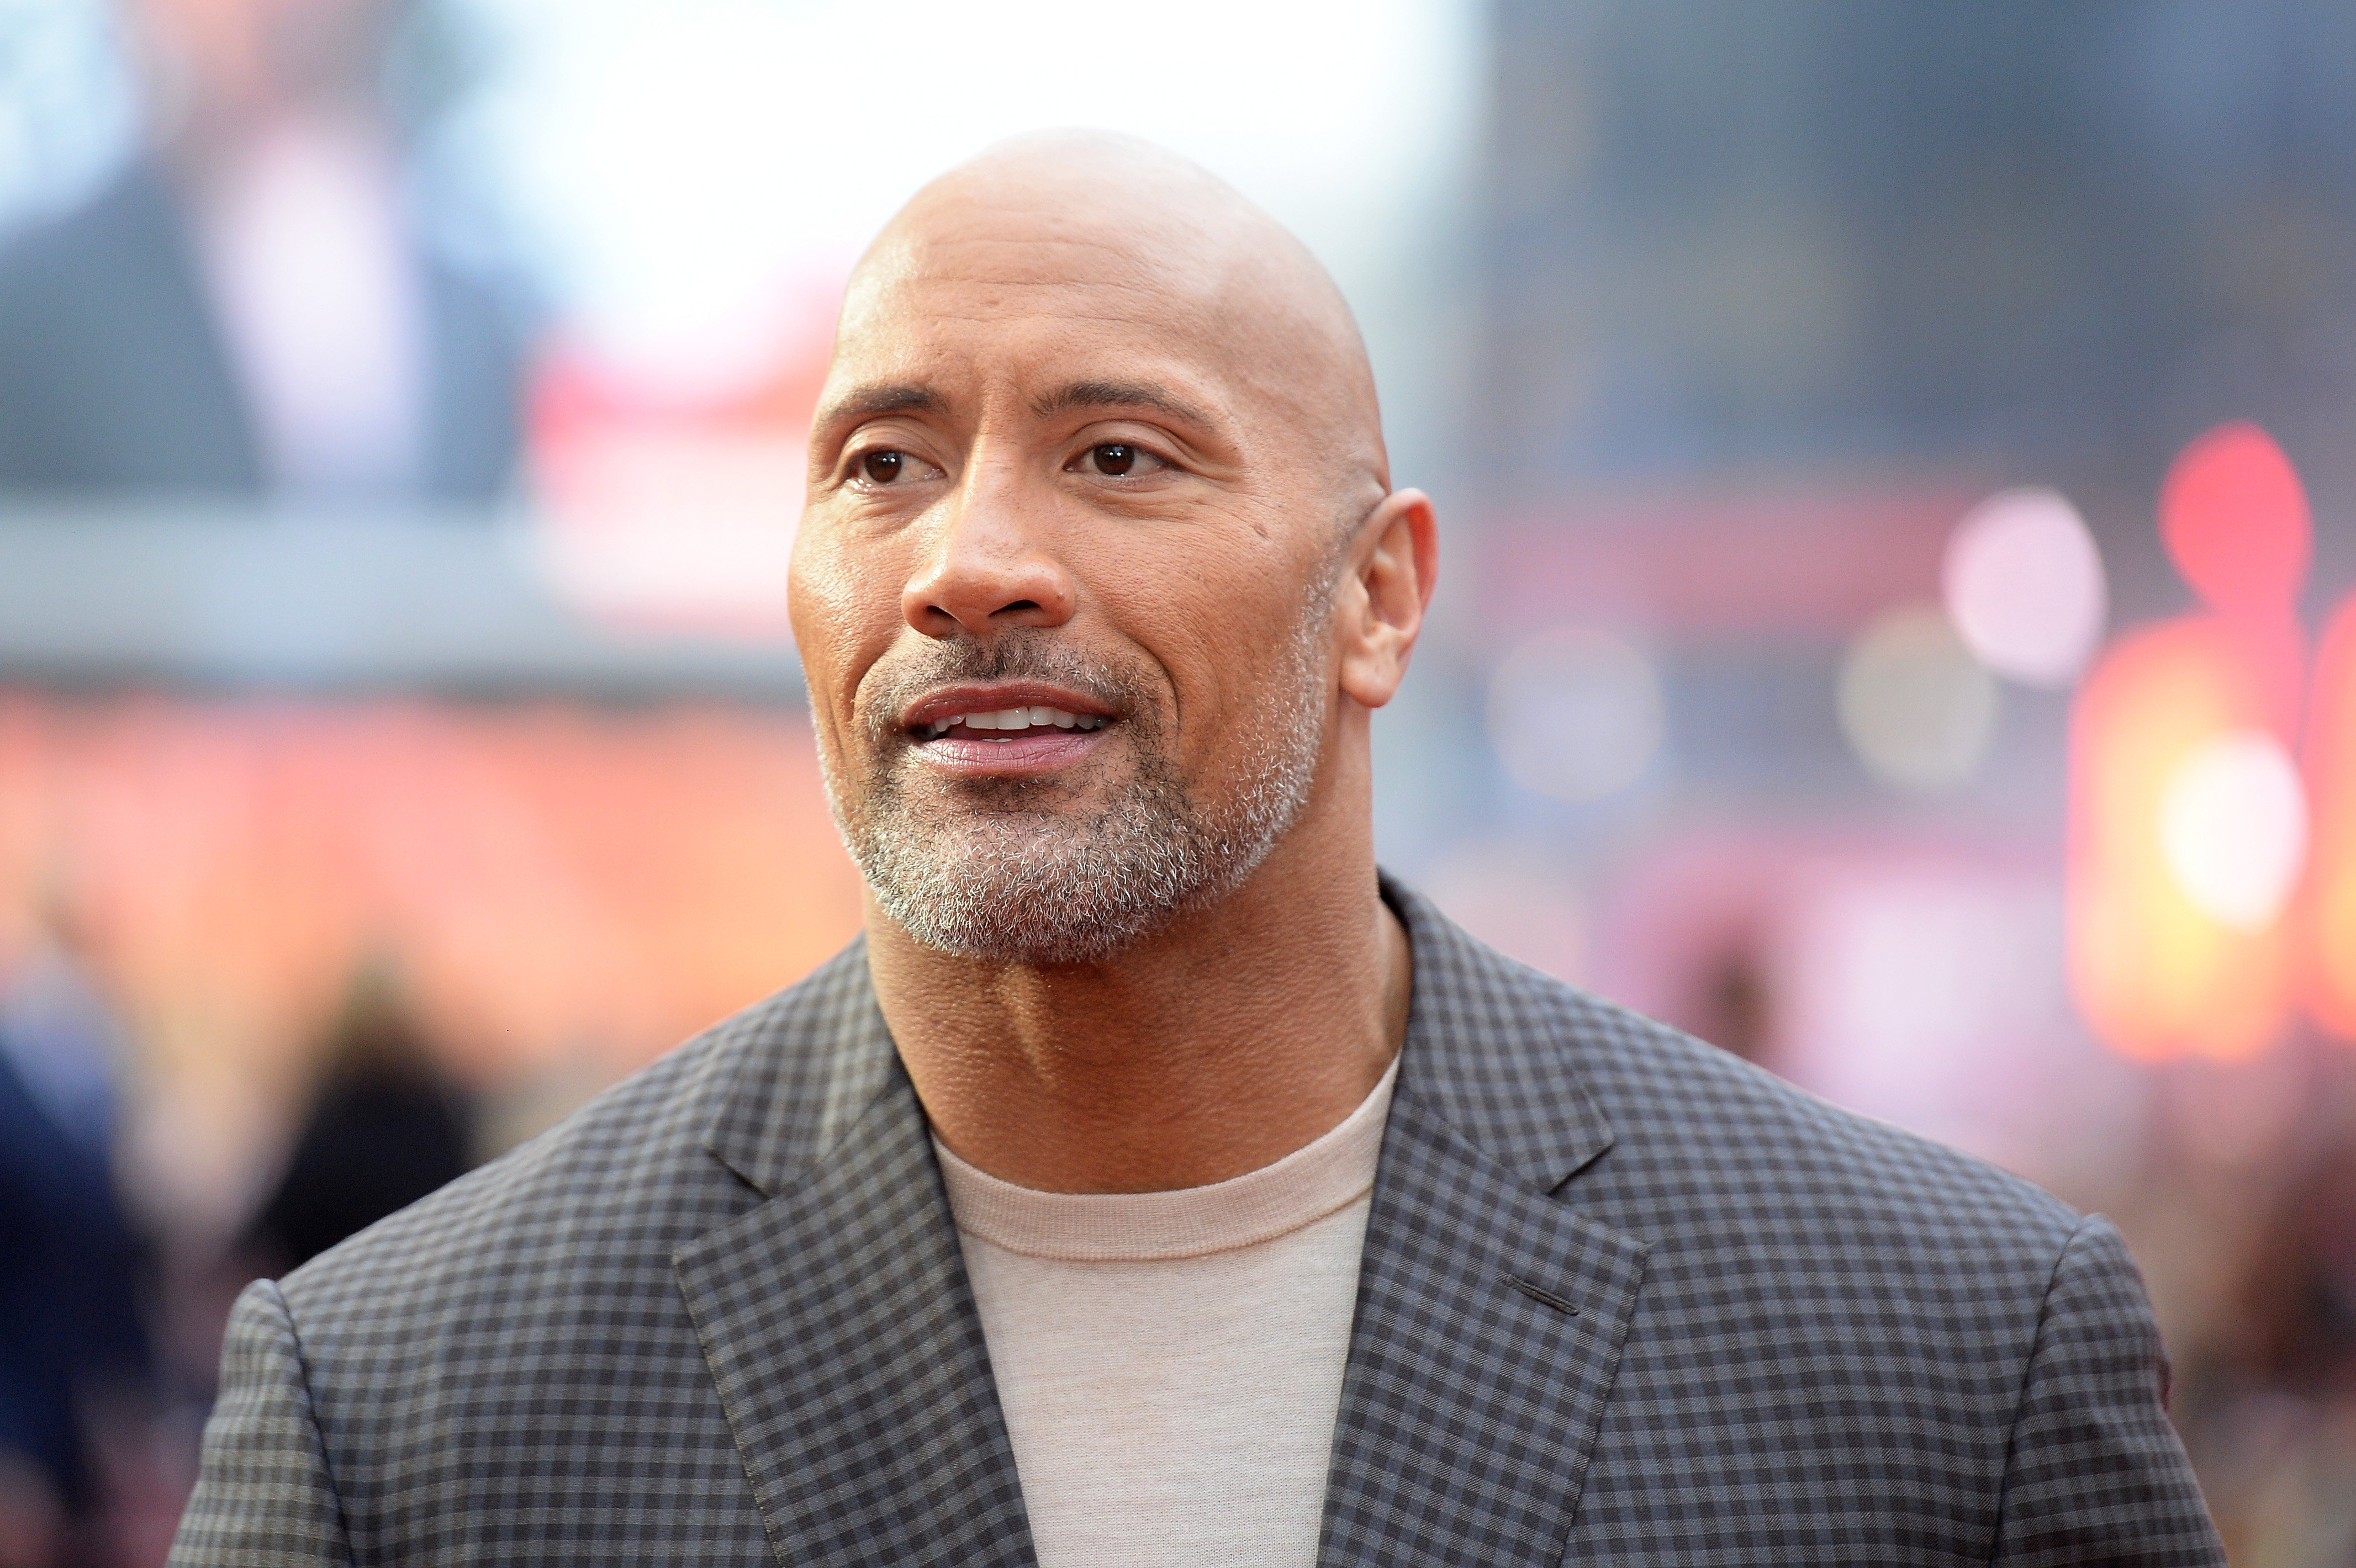 Dwayne Johnson at the European Premiere of 'Rampage' on April 11, 2018 in London, England | Photo: Getty Images